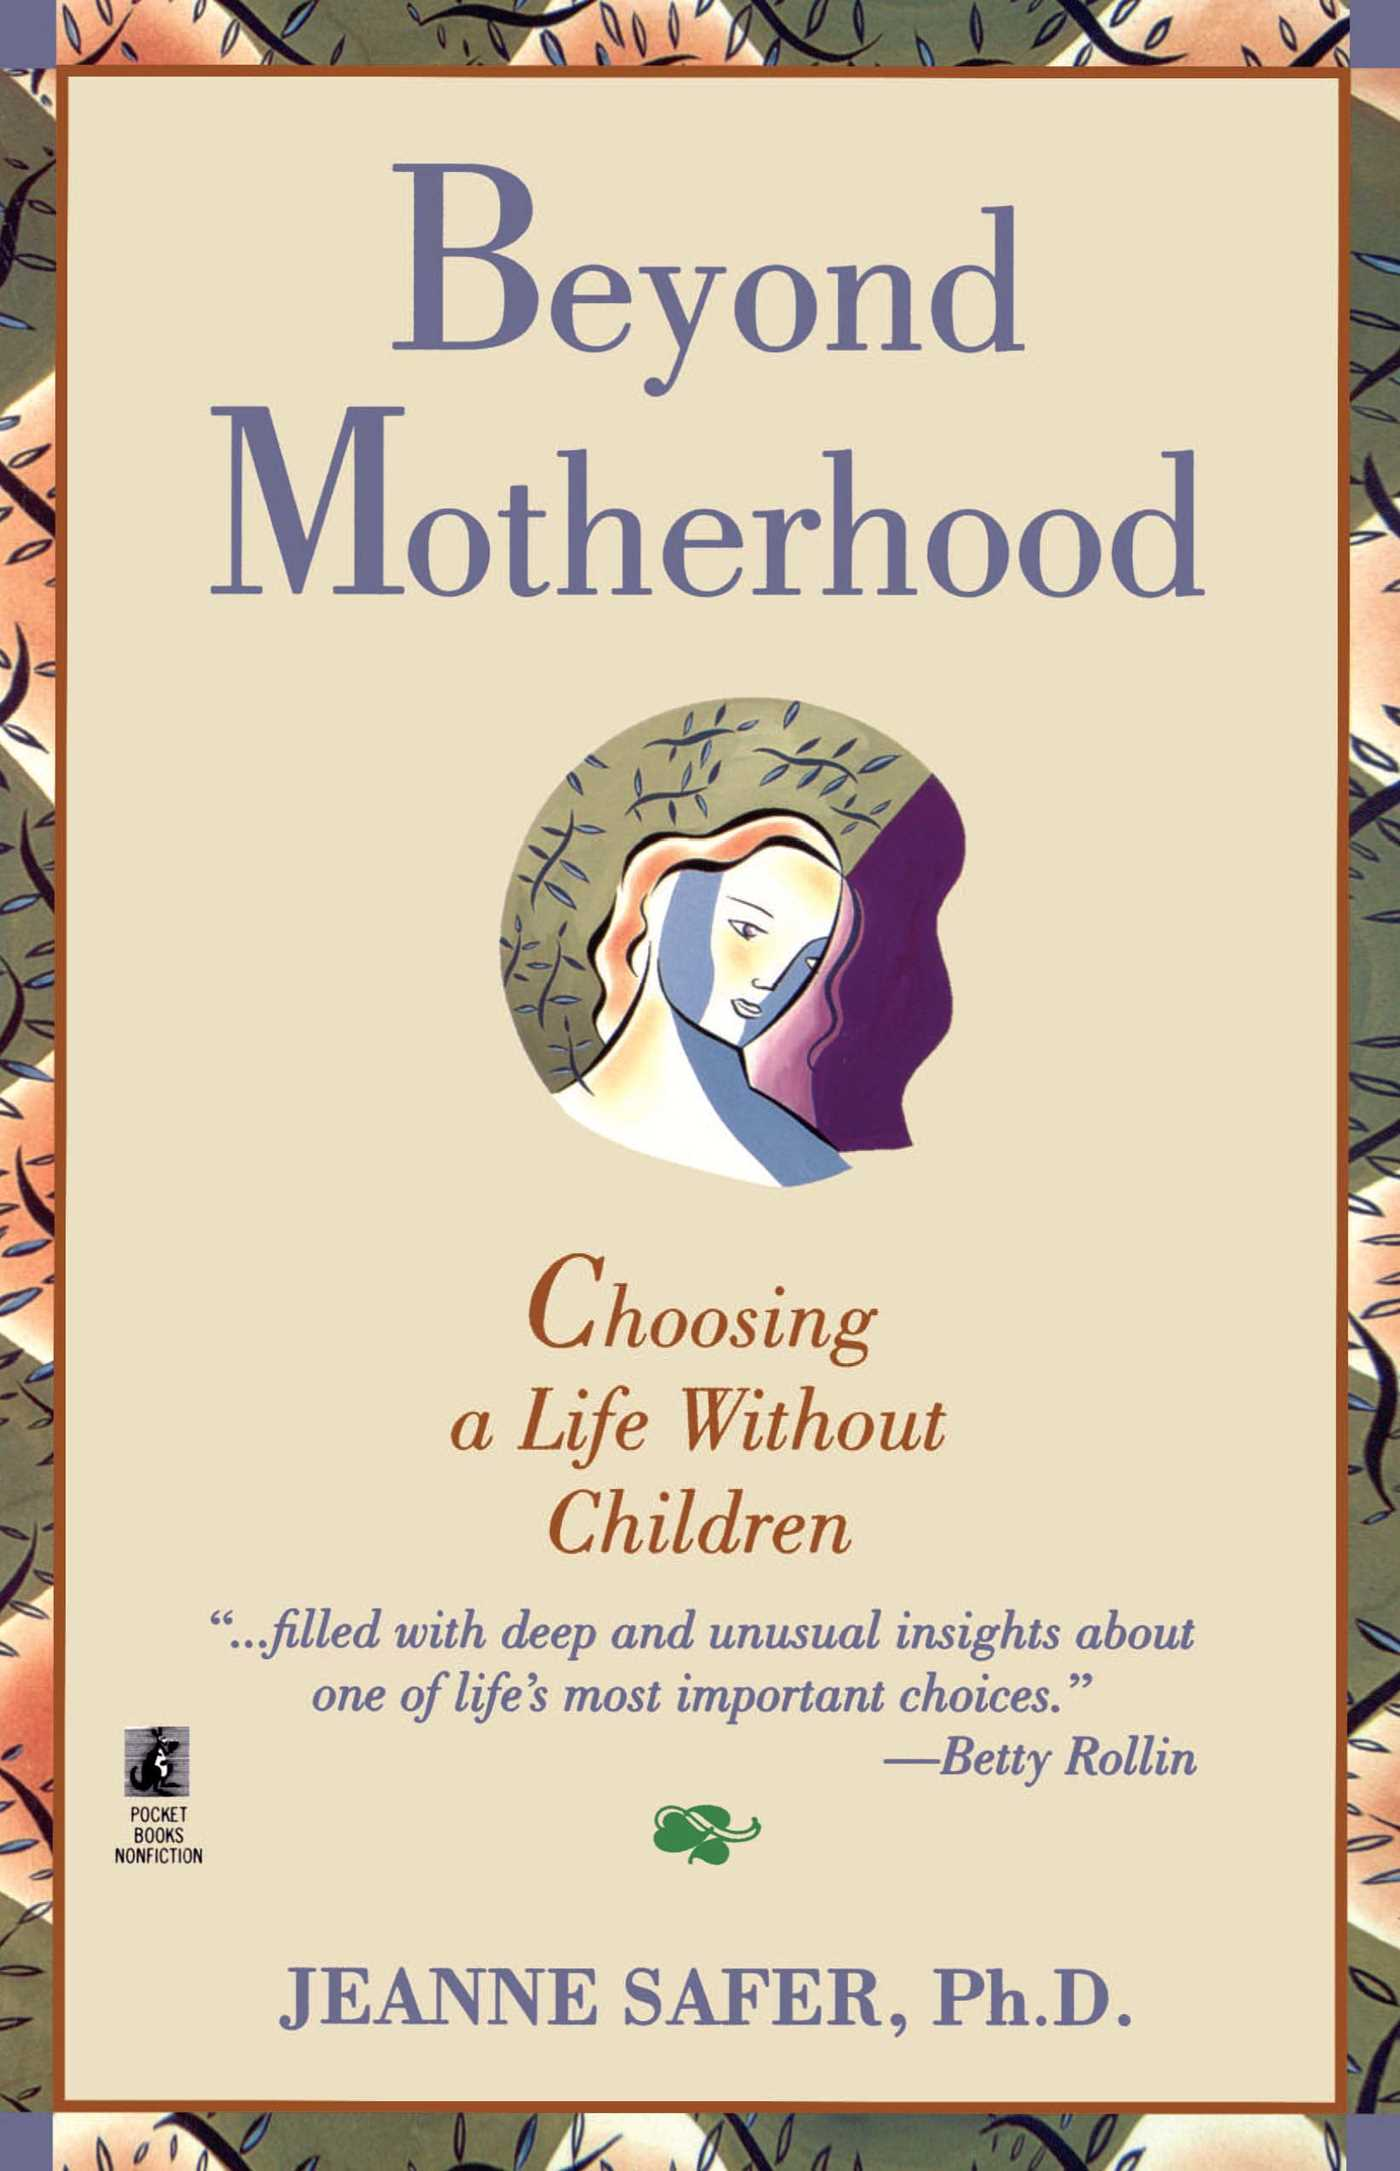 Beyond-motherhood-9780671793449_hr